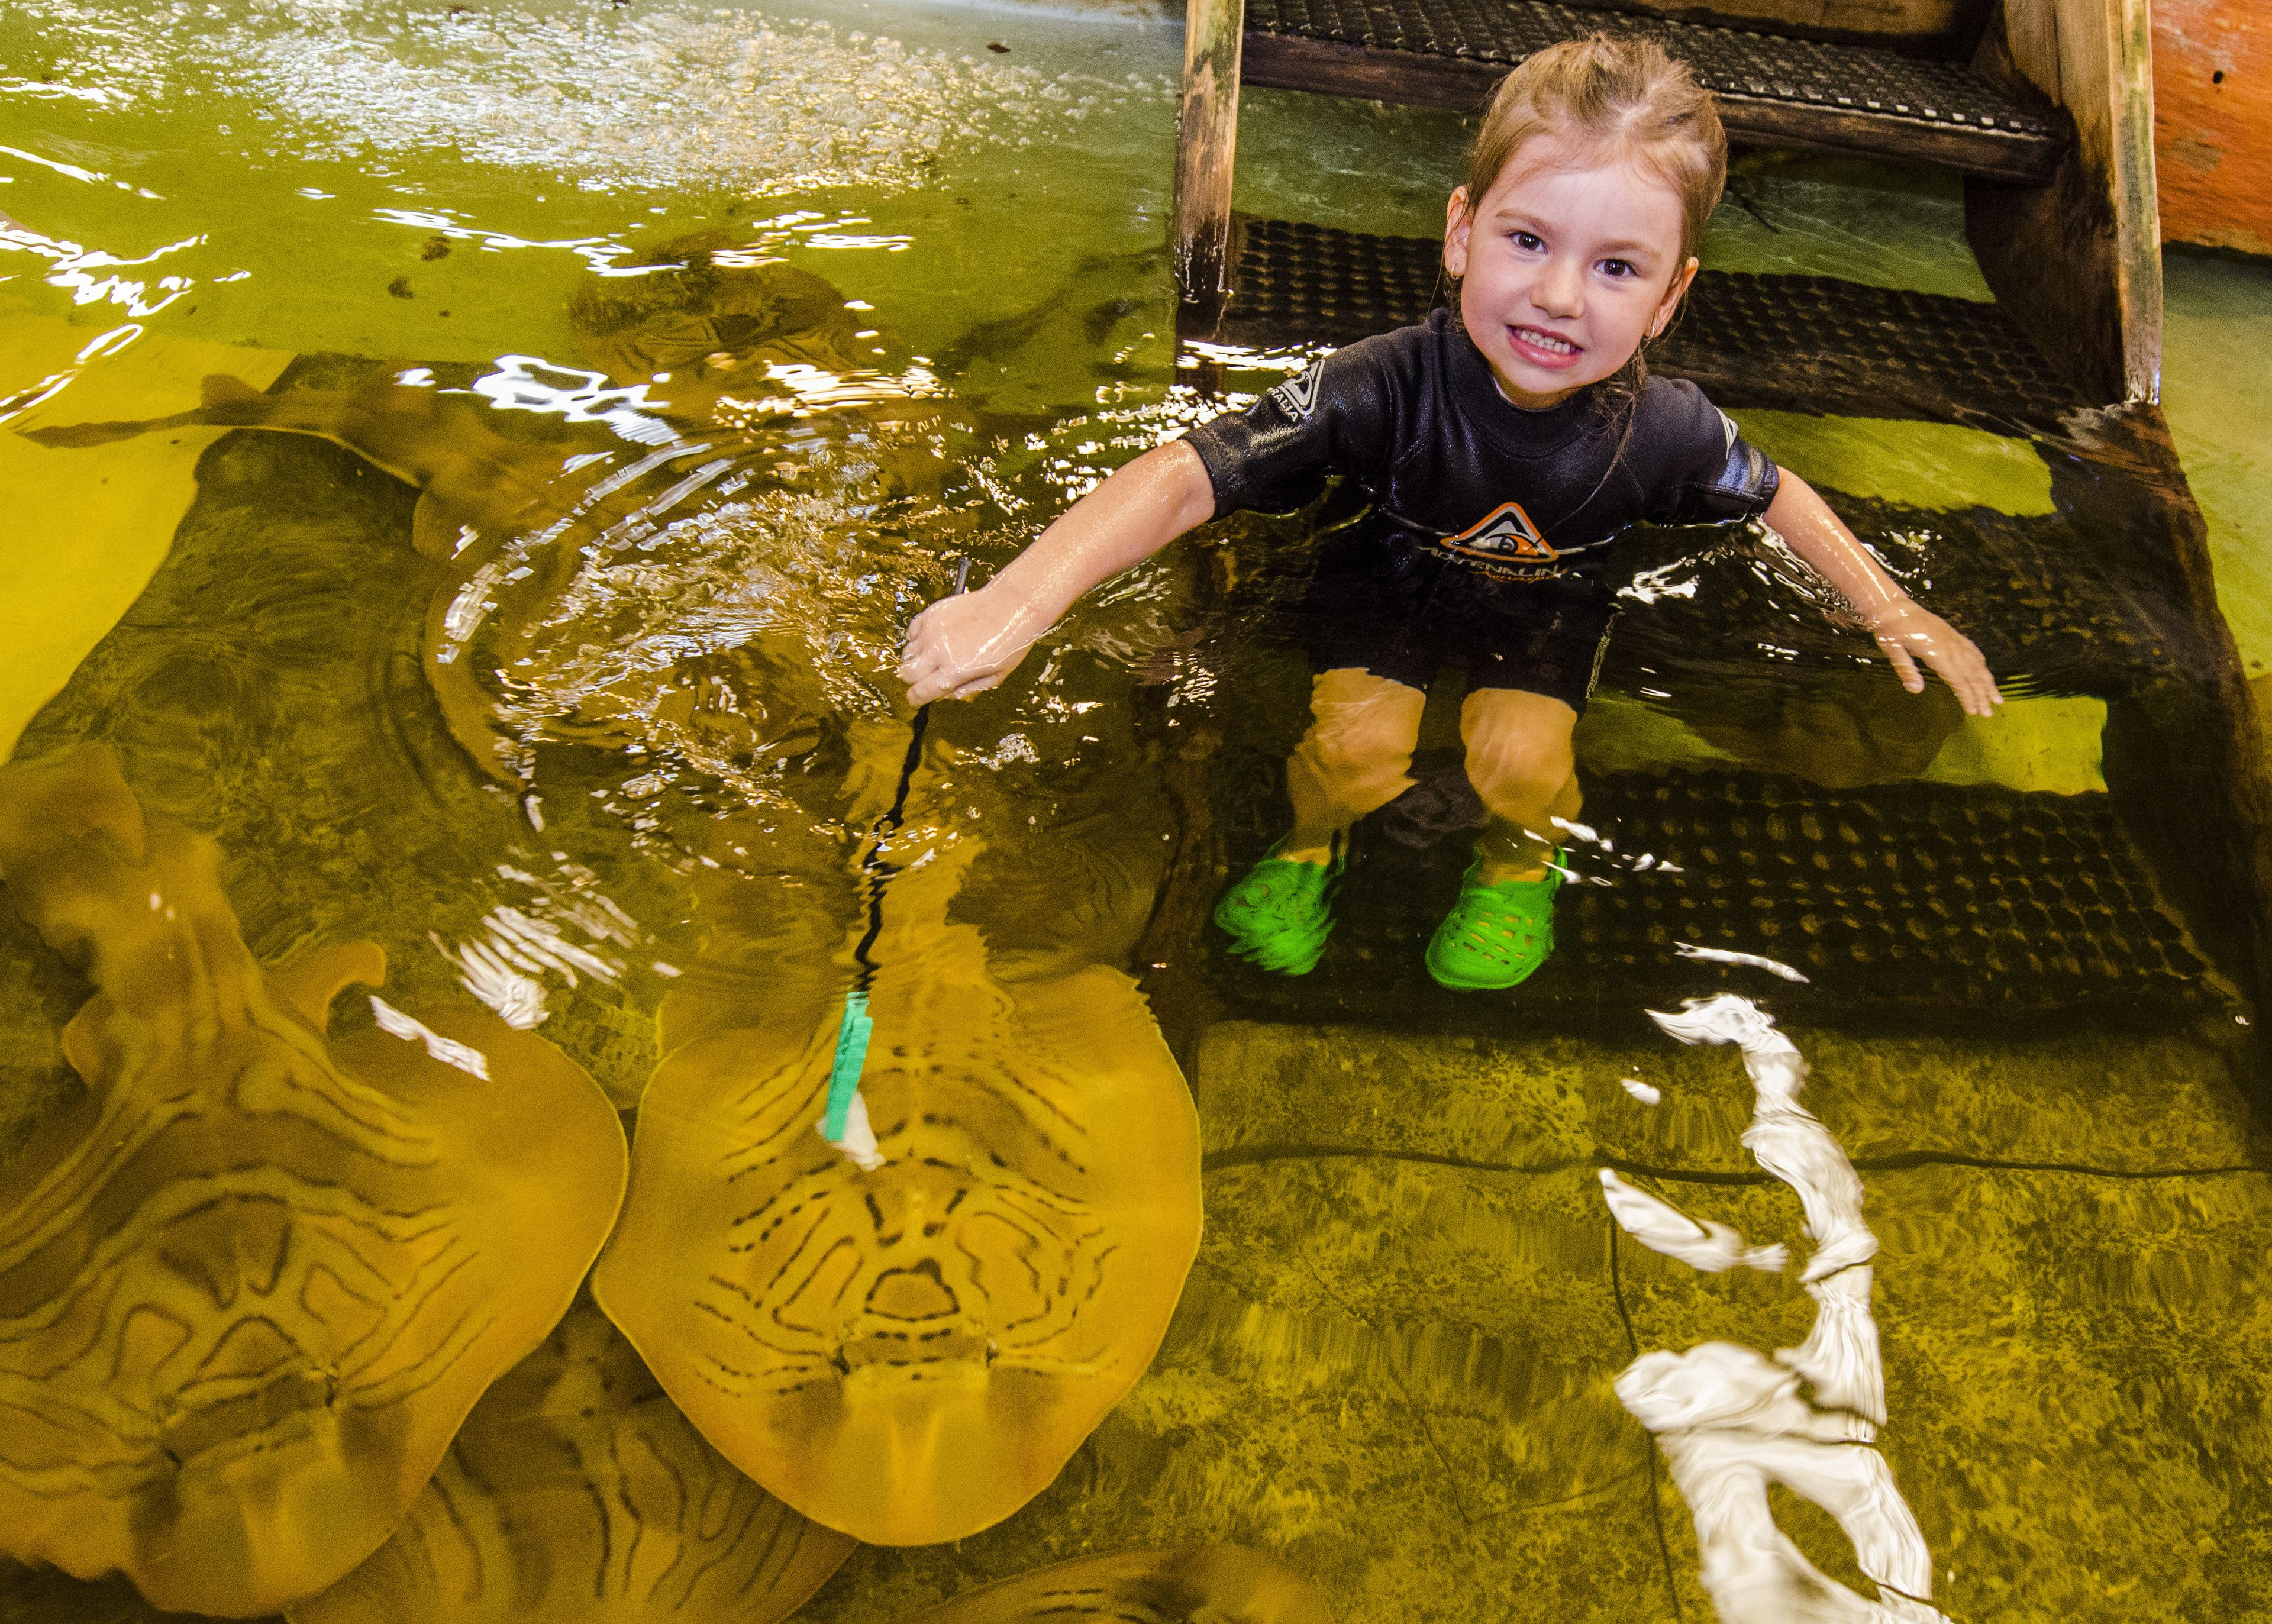 Little girl in a tank with stingrays at Irukandji Aquarium in New South Wales